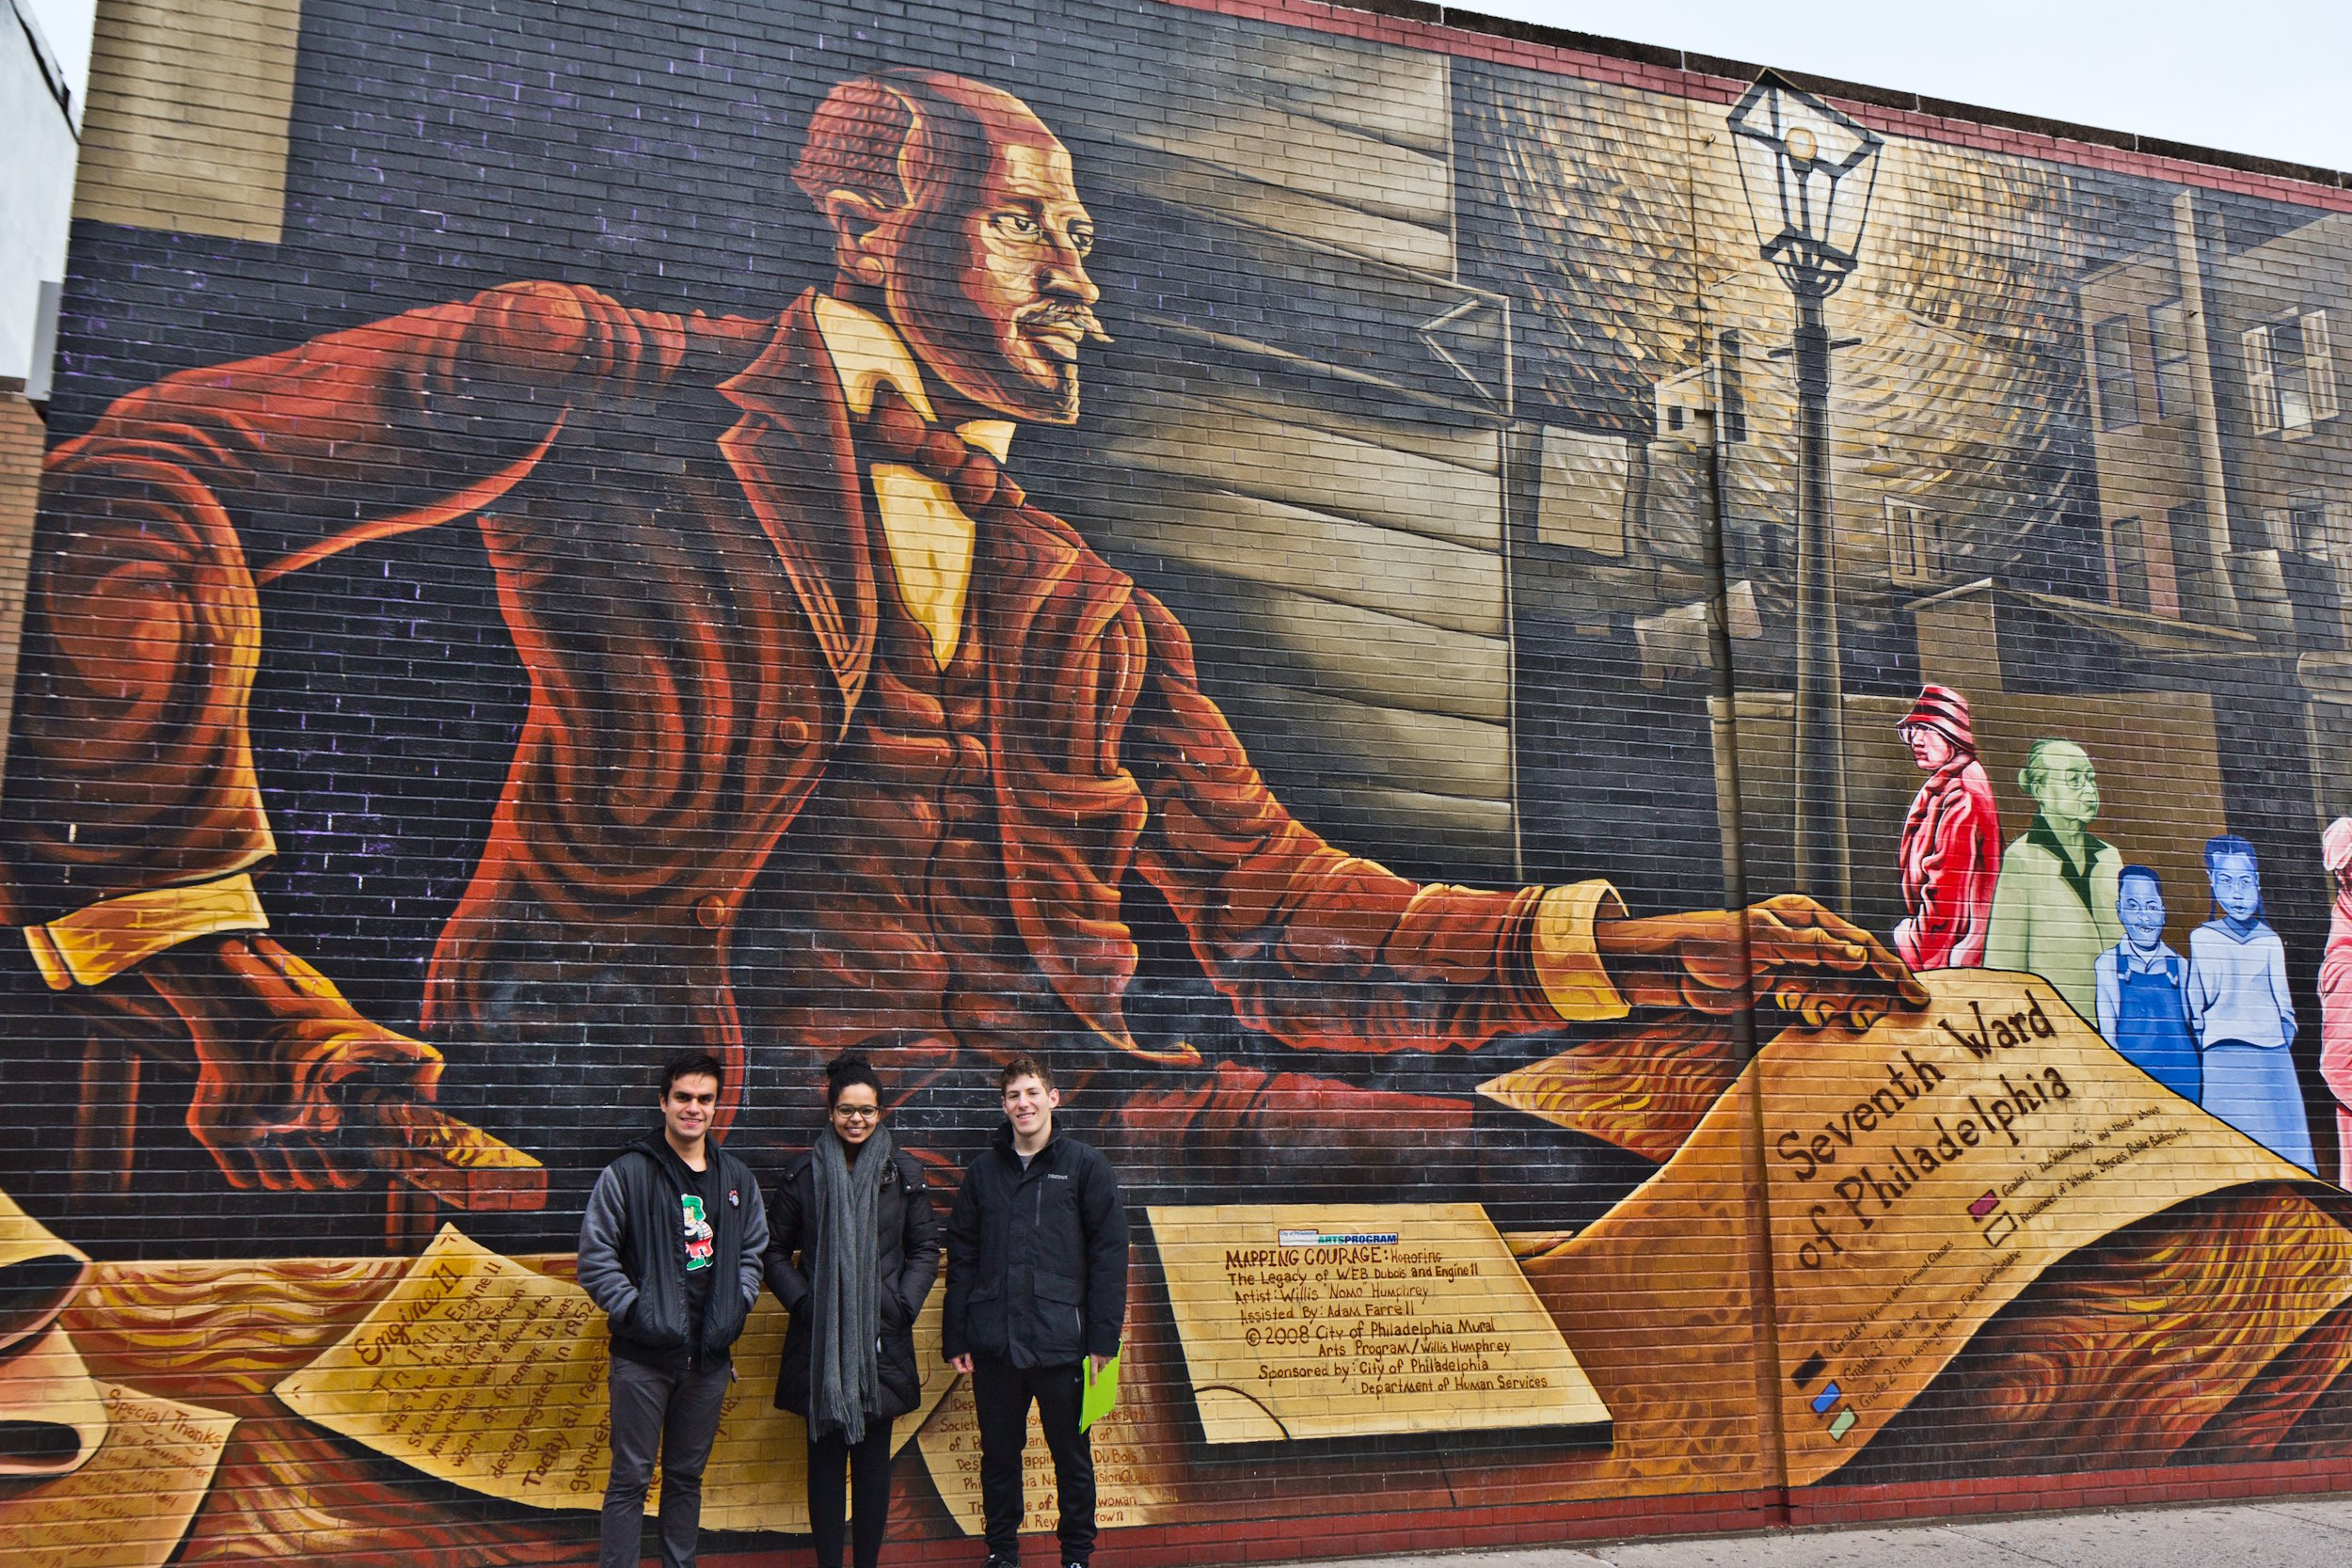 Bois Mural Touring Philly S Black History Along South Street From Du Bois